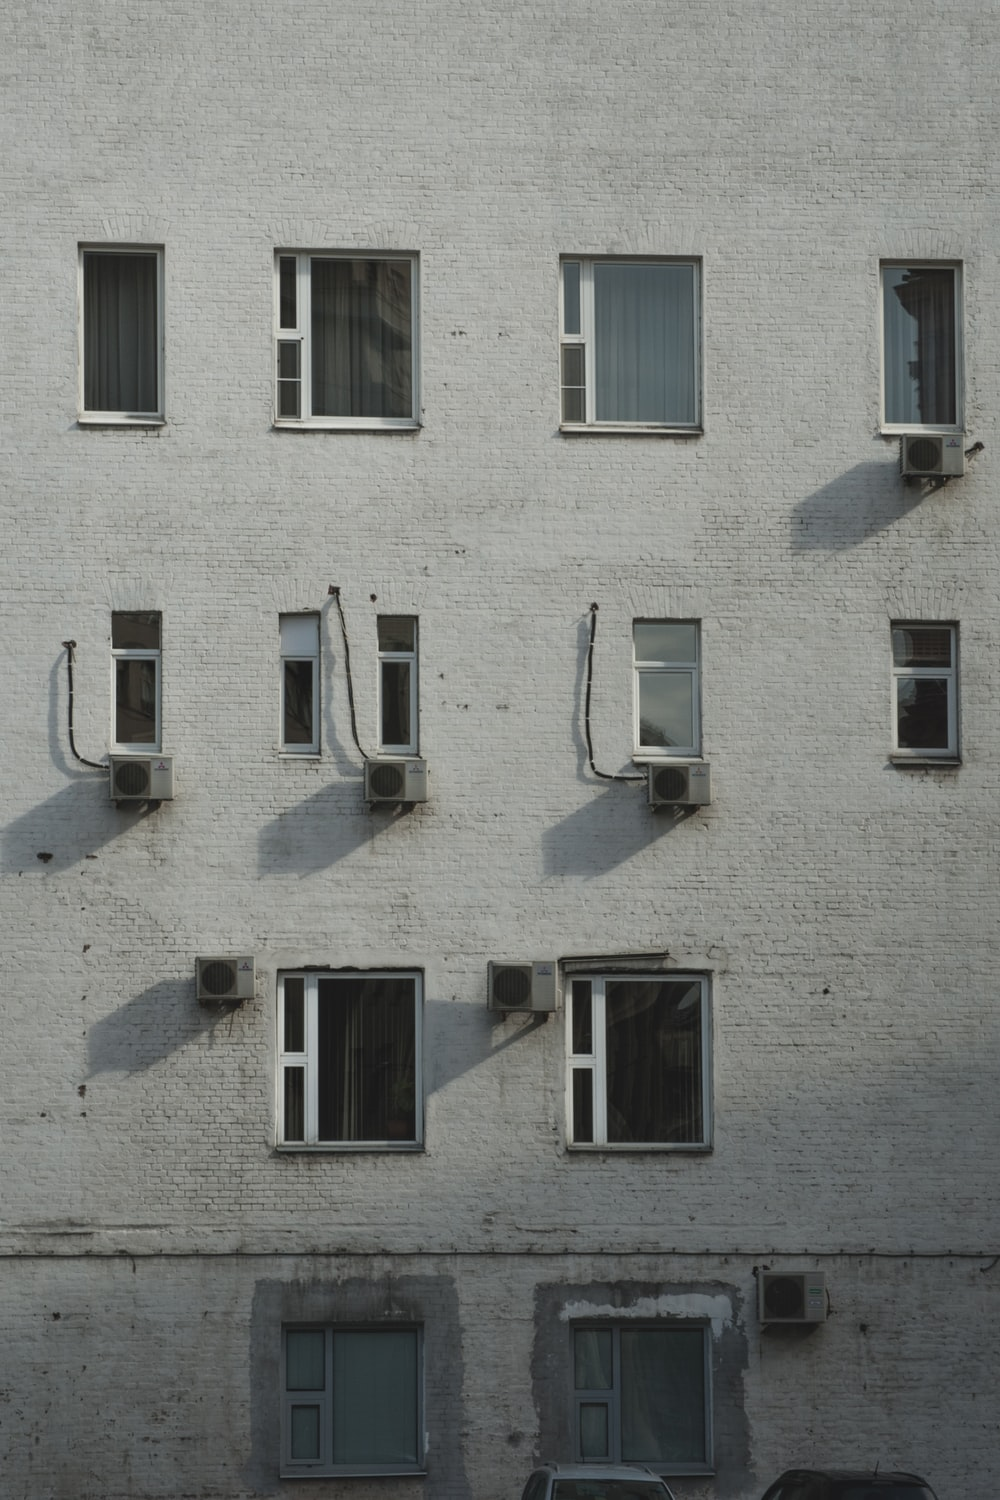 white concrete building with window open